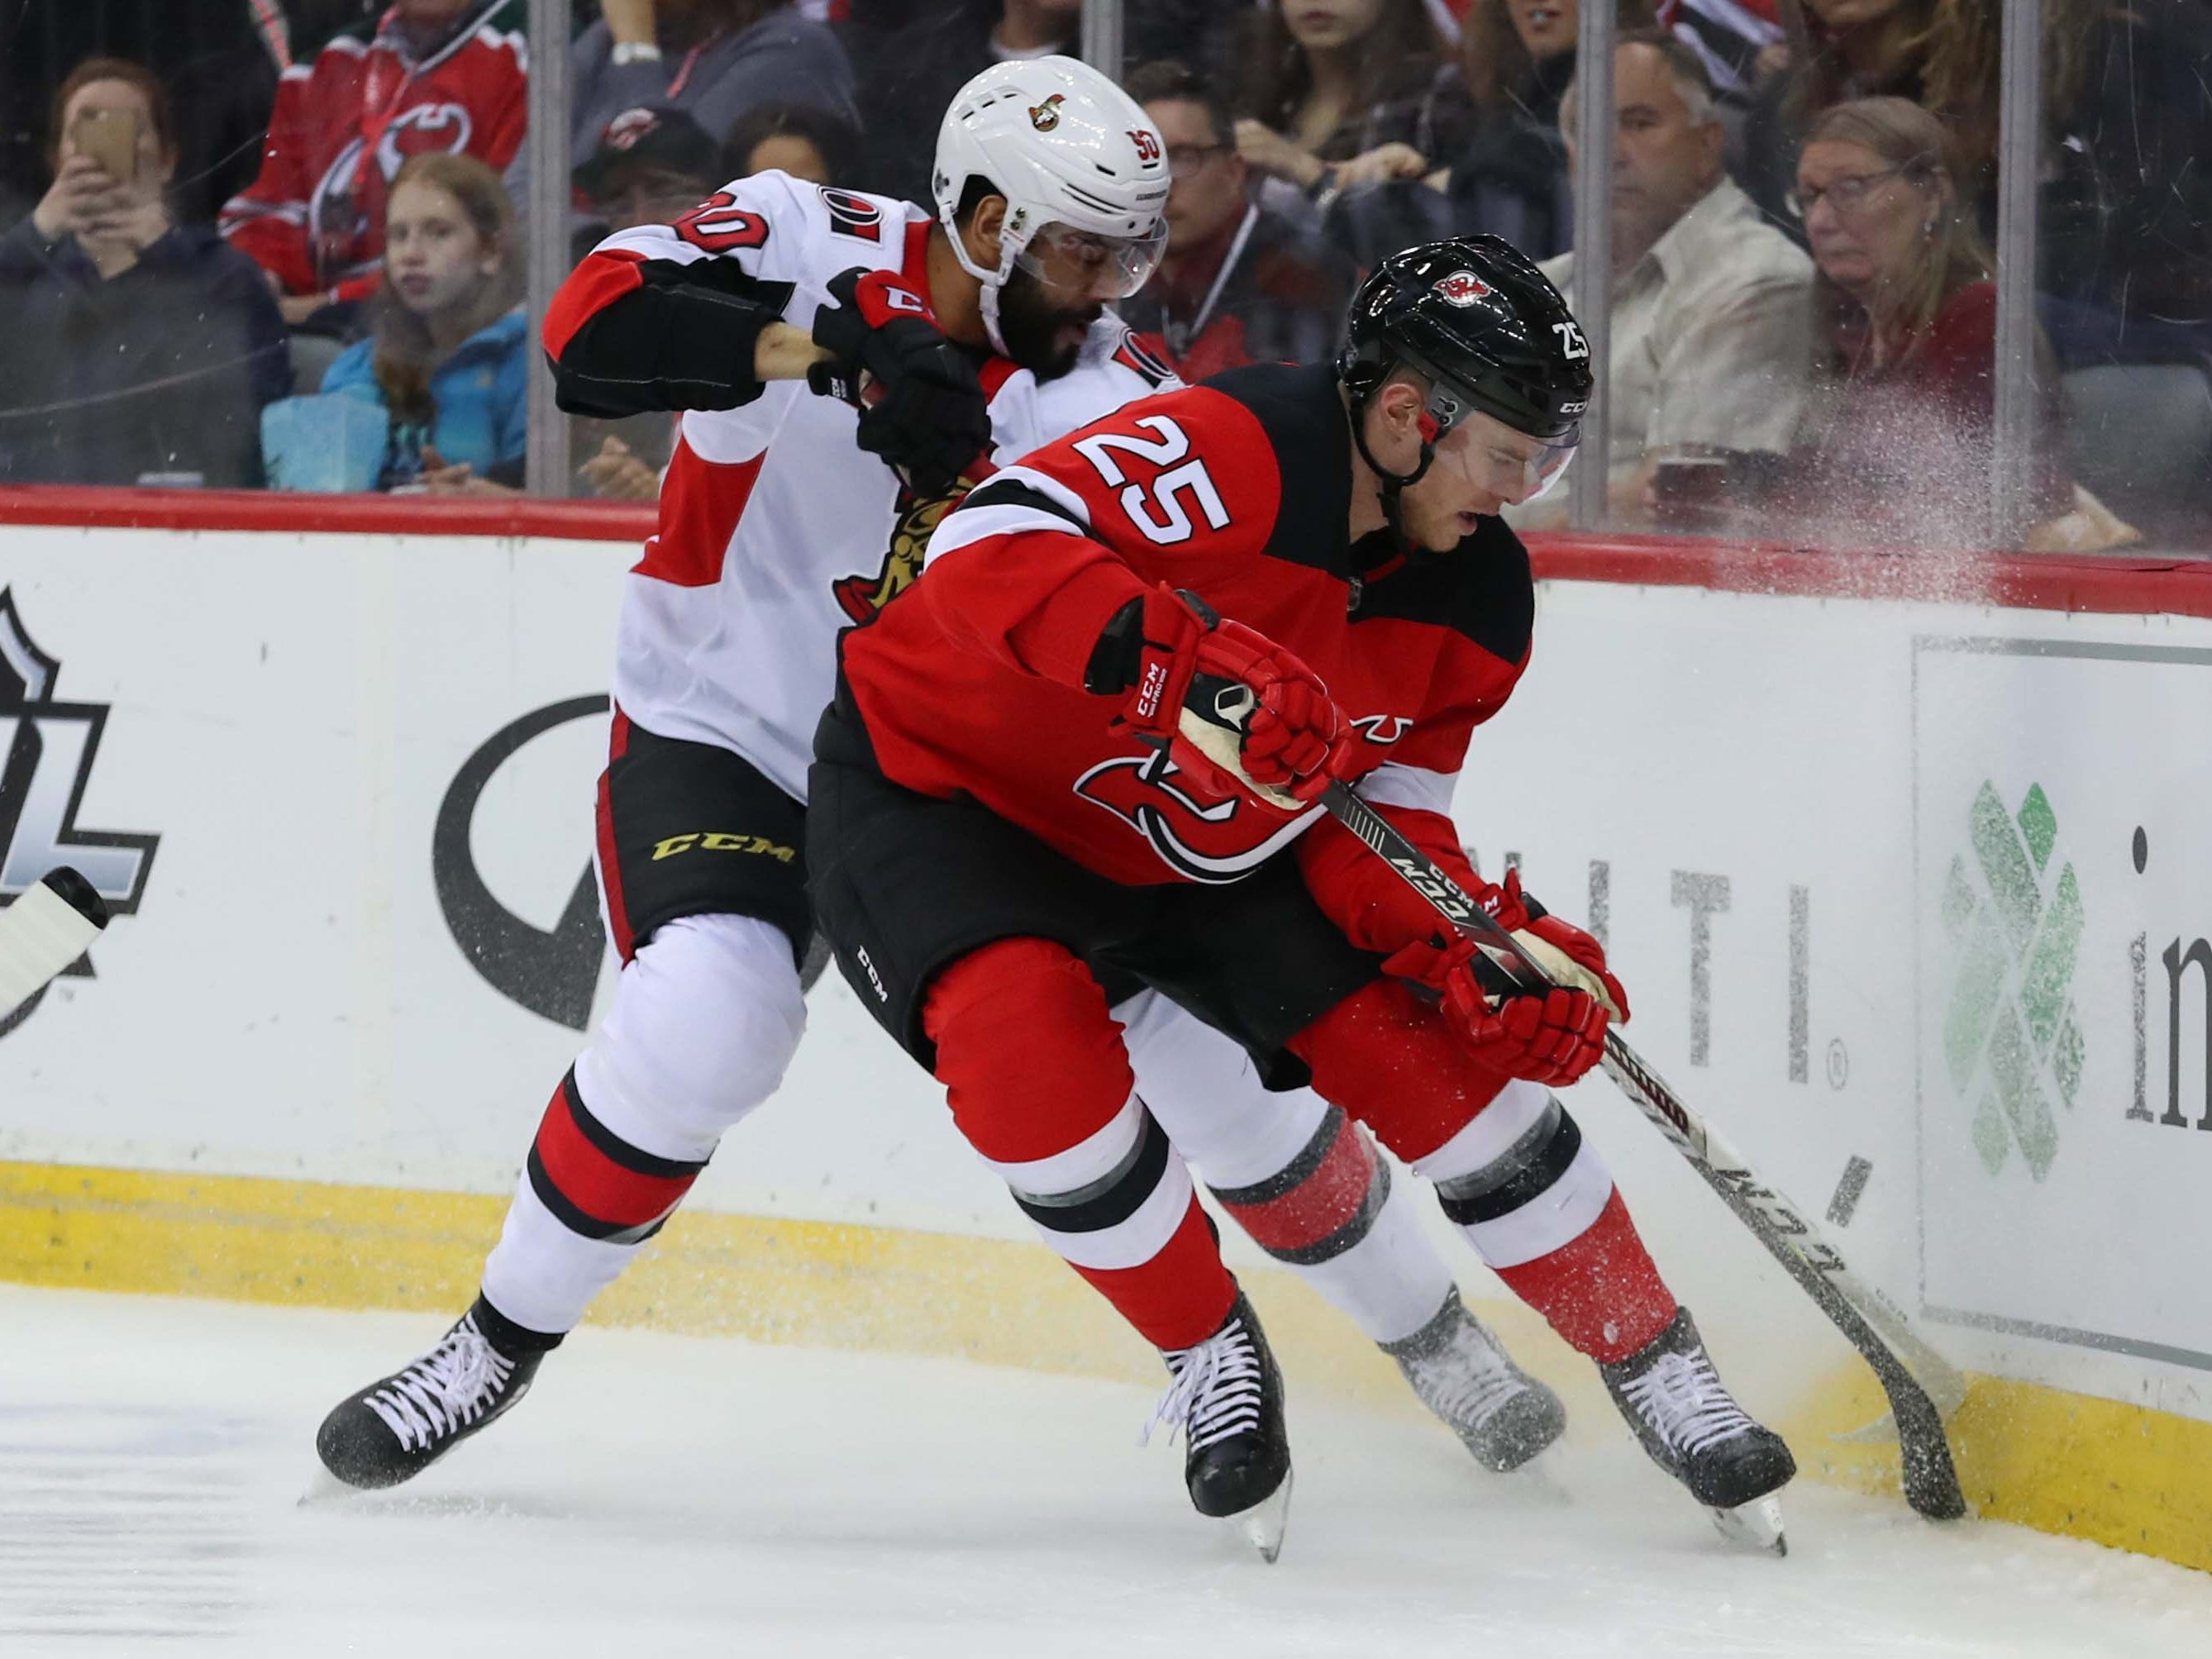 Feb 21, 2019; Newark, NJ, USA; New Jersey Devils defenseman Mirco Mueller (25) and Ottawa Senators right wing Darren Archibald (90) during the first period at Prudential Center.